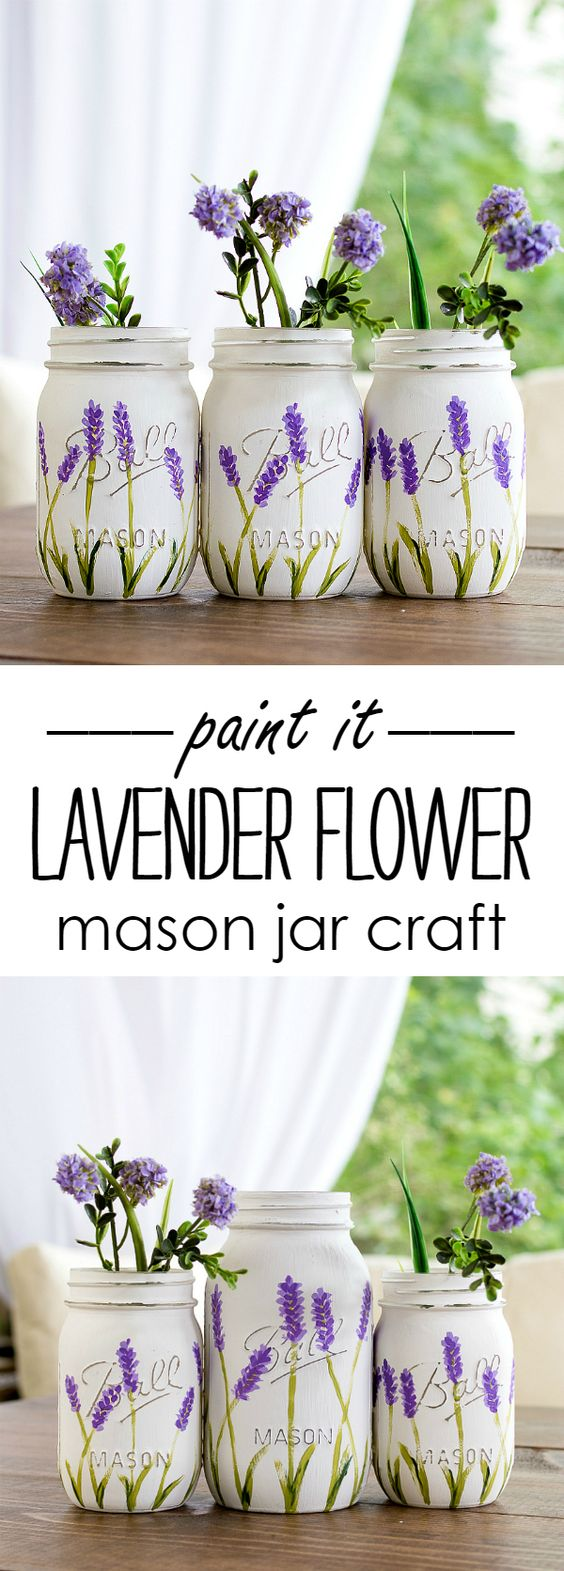 Lavender Flower Painted Mason Jars.